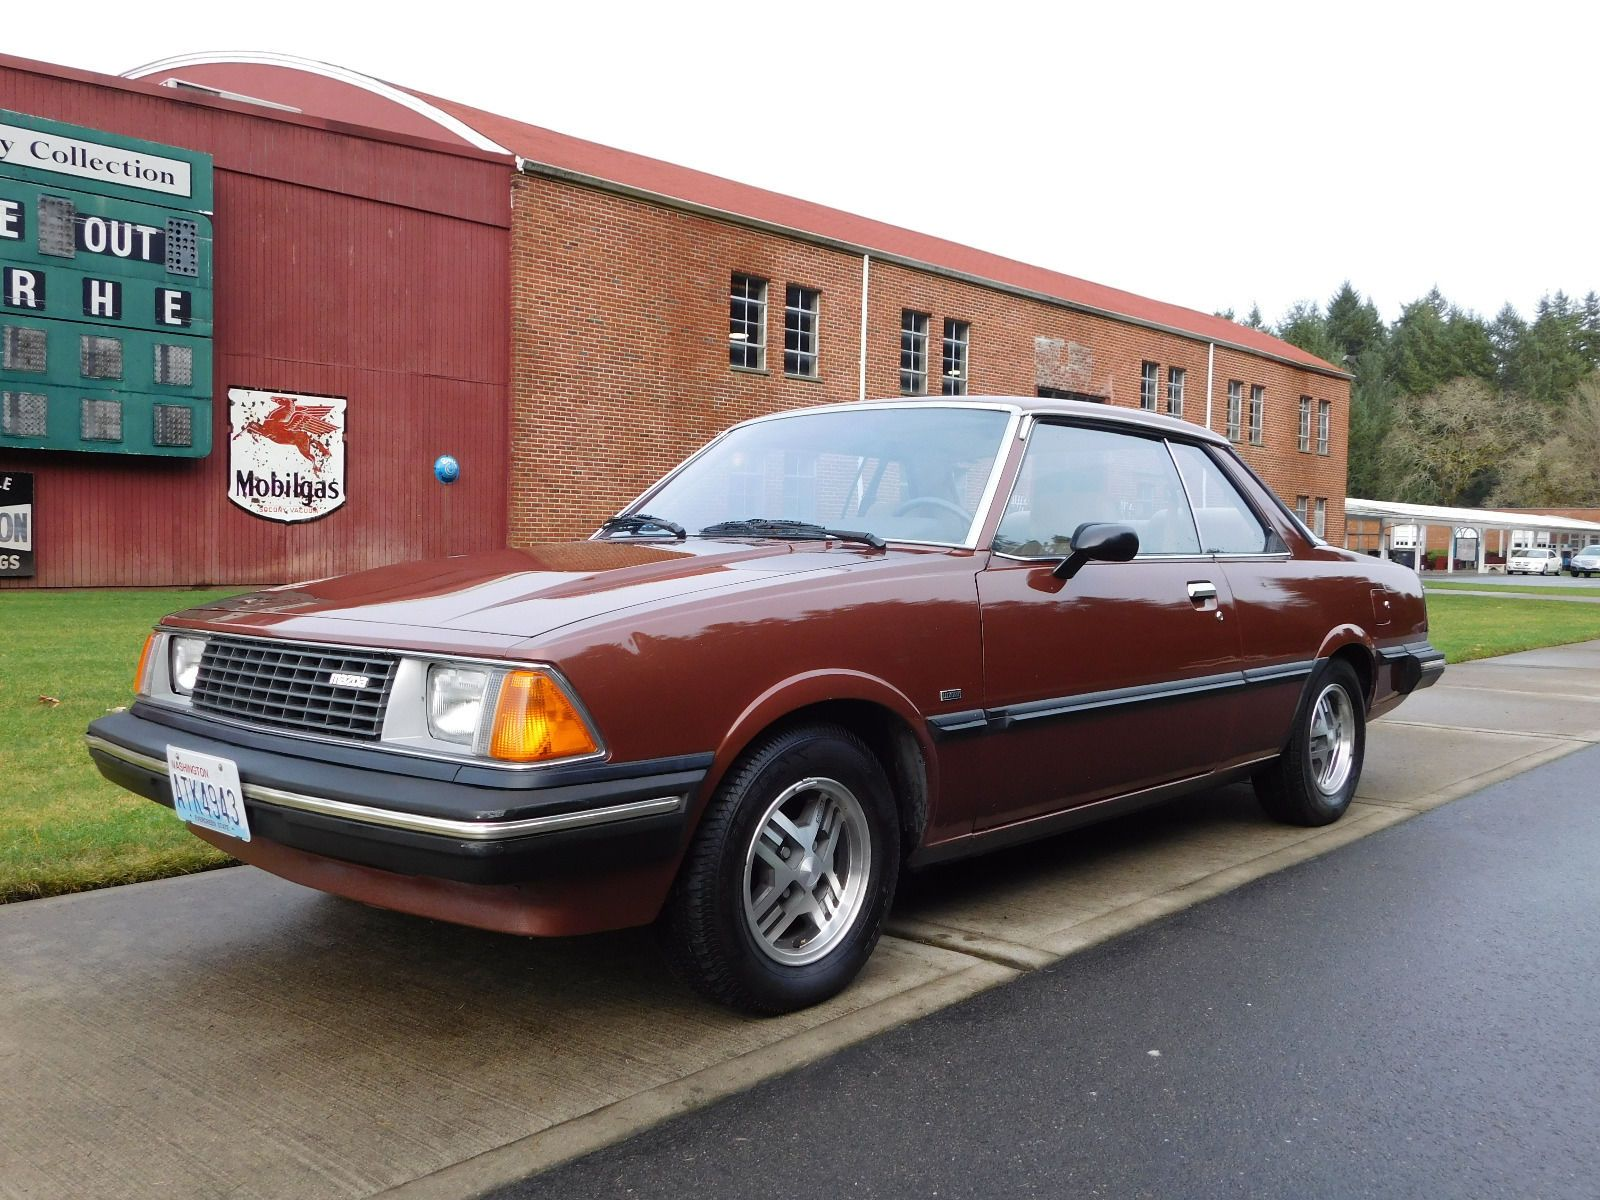 1982 mazda 626 coupe japanese classics pinterest mazda and cars. Black Bedroom Furniture Sets. Home Design Ideas